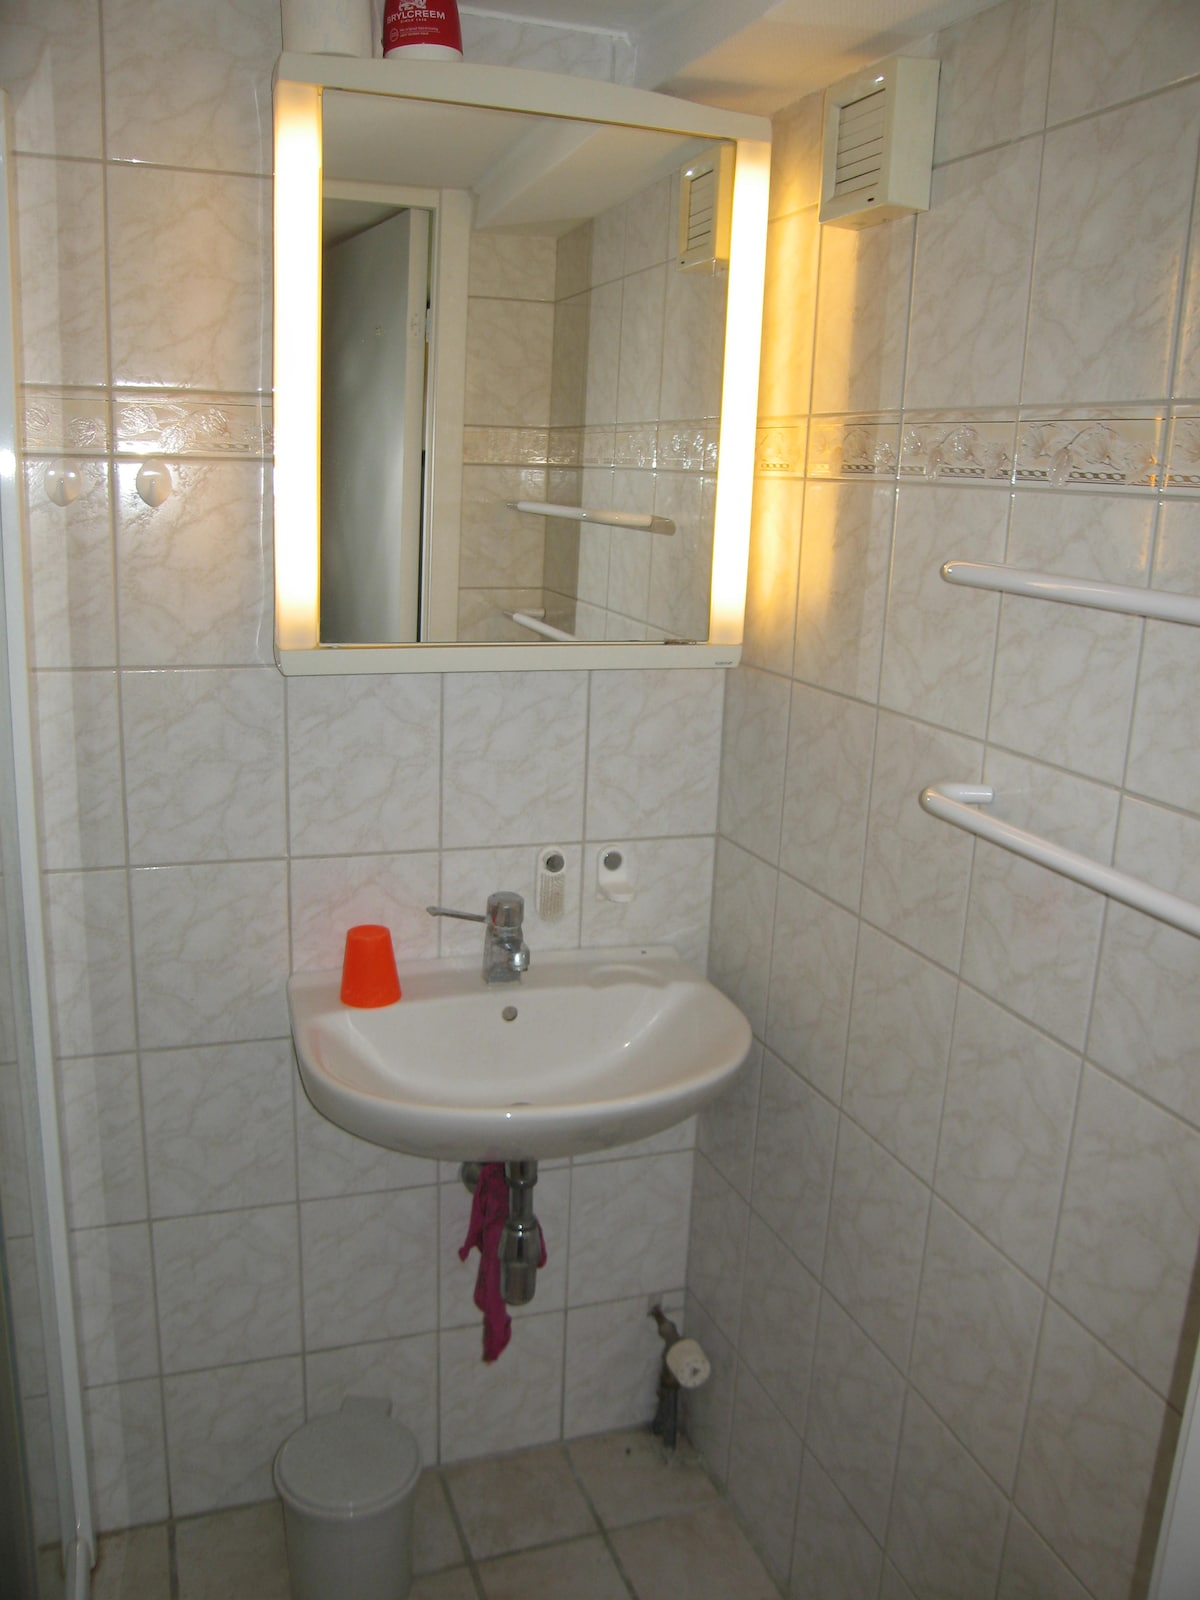 Comfortable room, close to airport